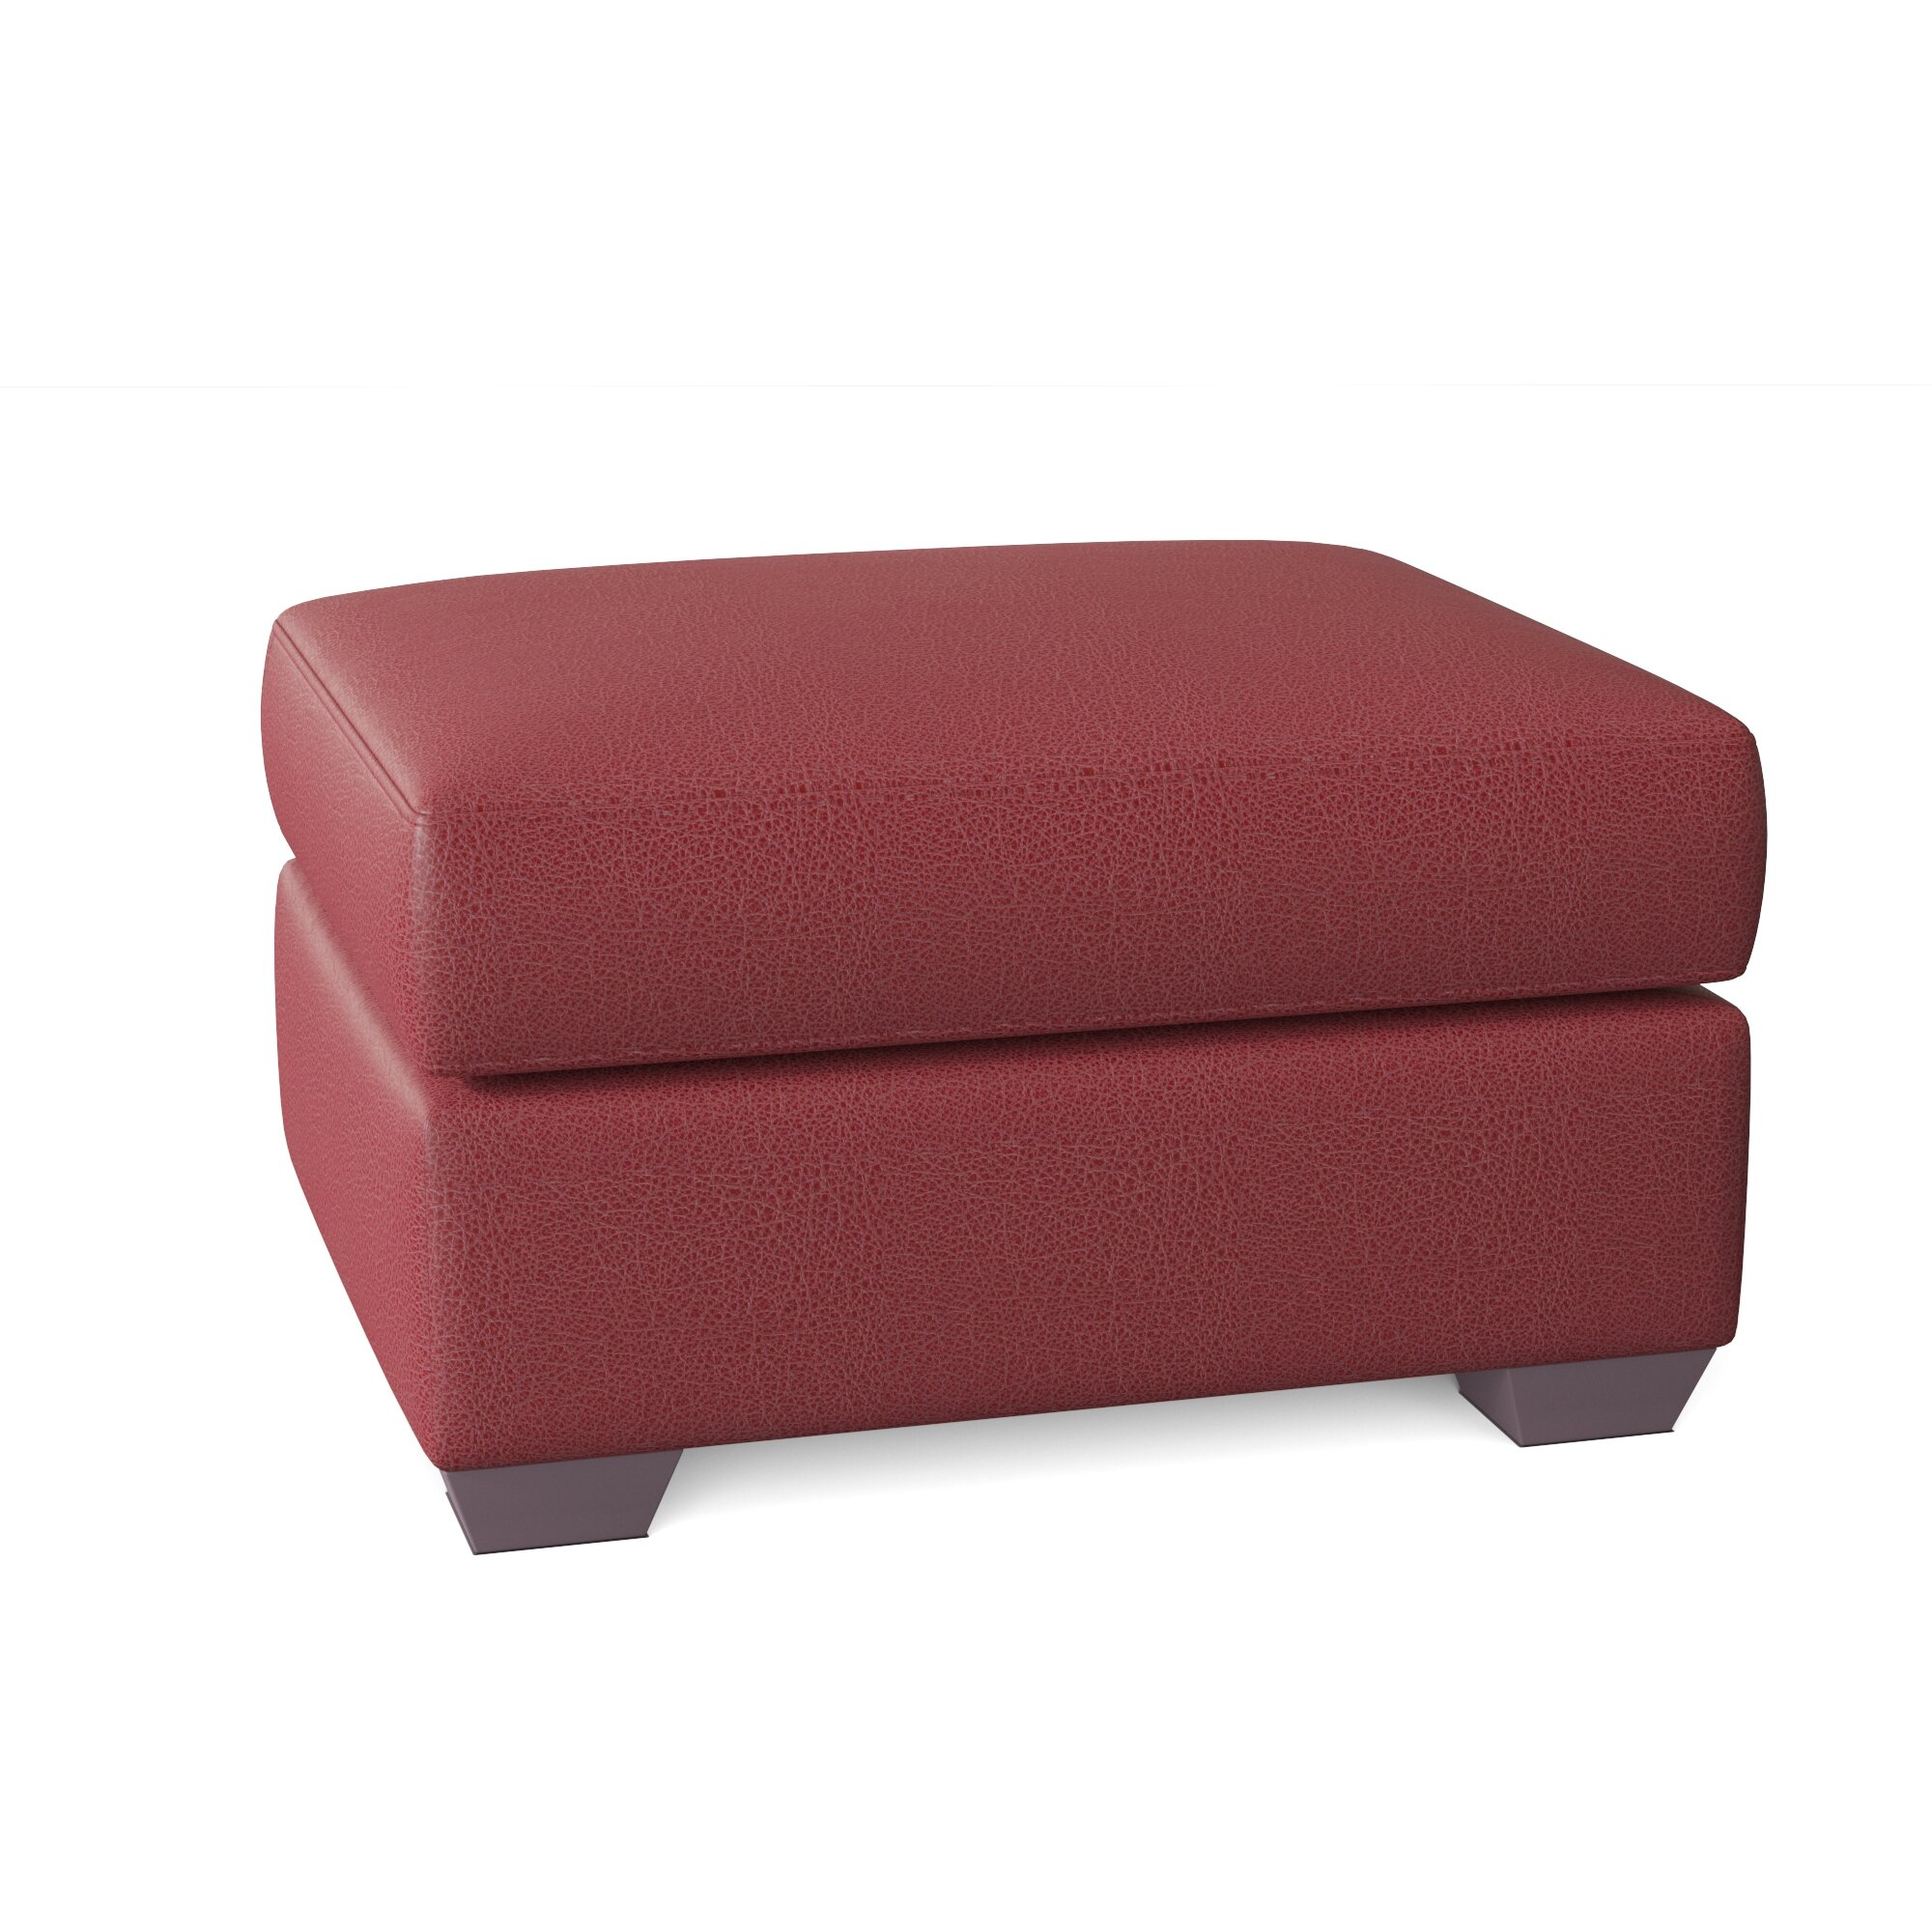 Wayfair Custom Upholstery Rachel 30 Genuine Leather Rectangle Ottoman Wayfair